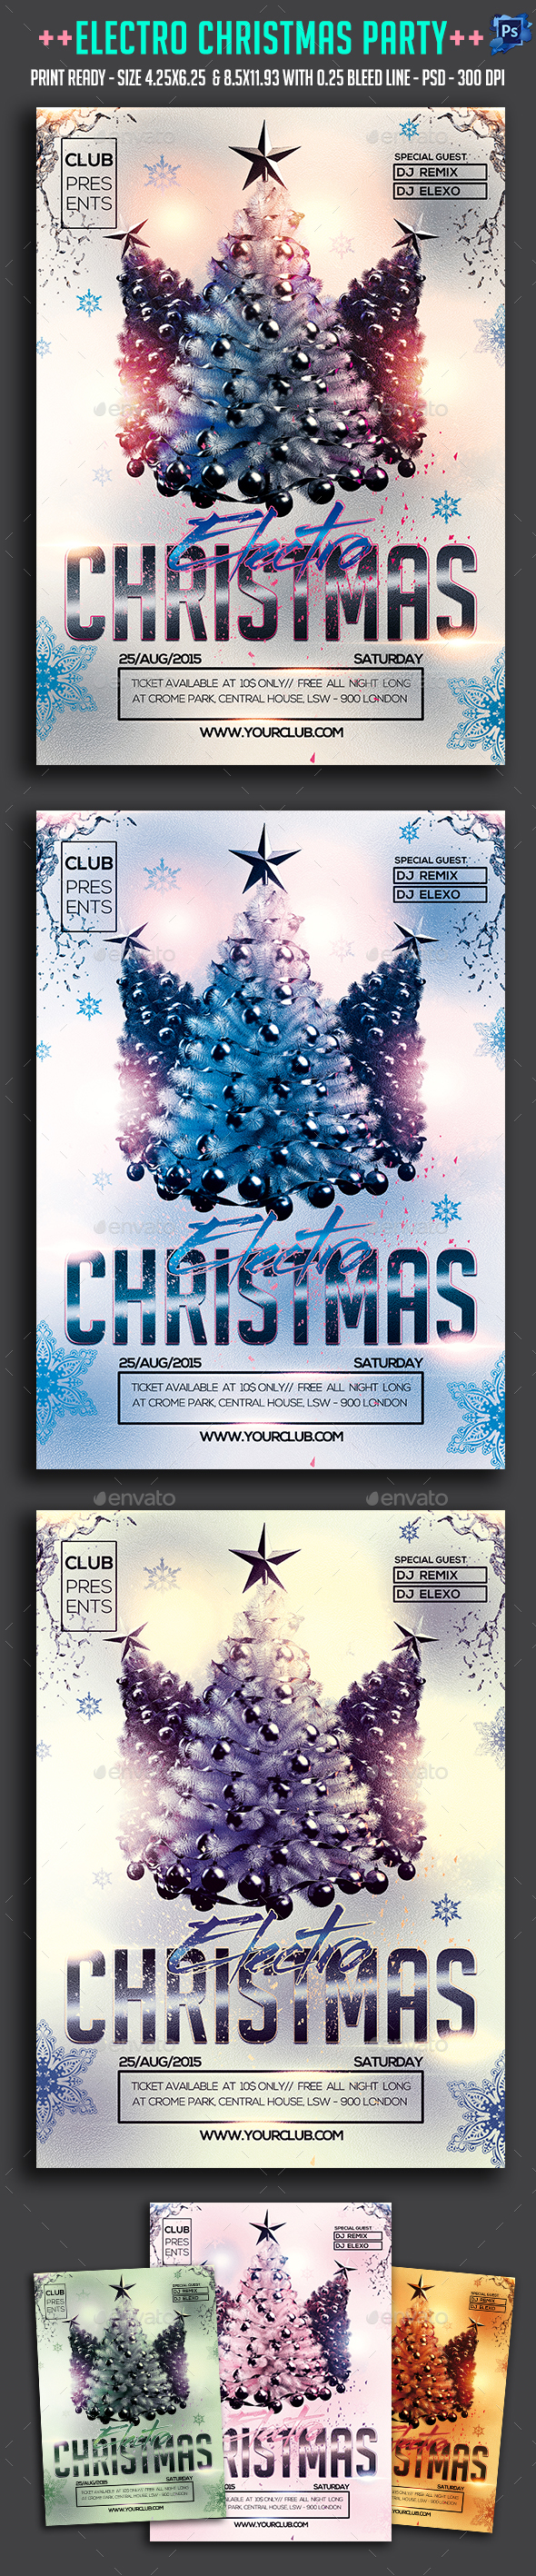 Electro Christmas Party Flyer - Clubs & Parties Events